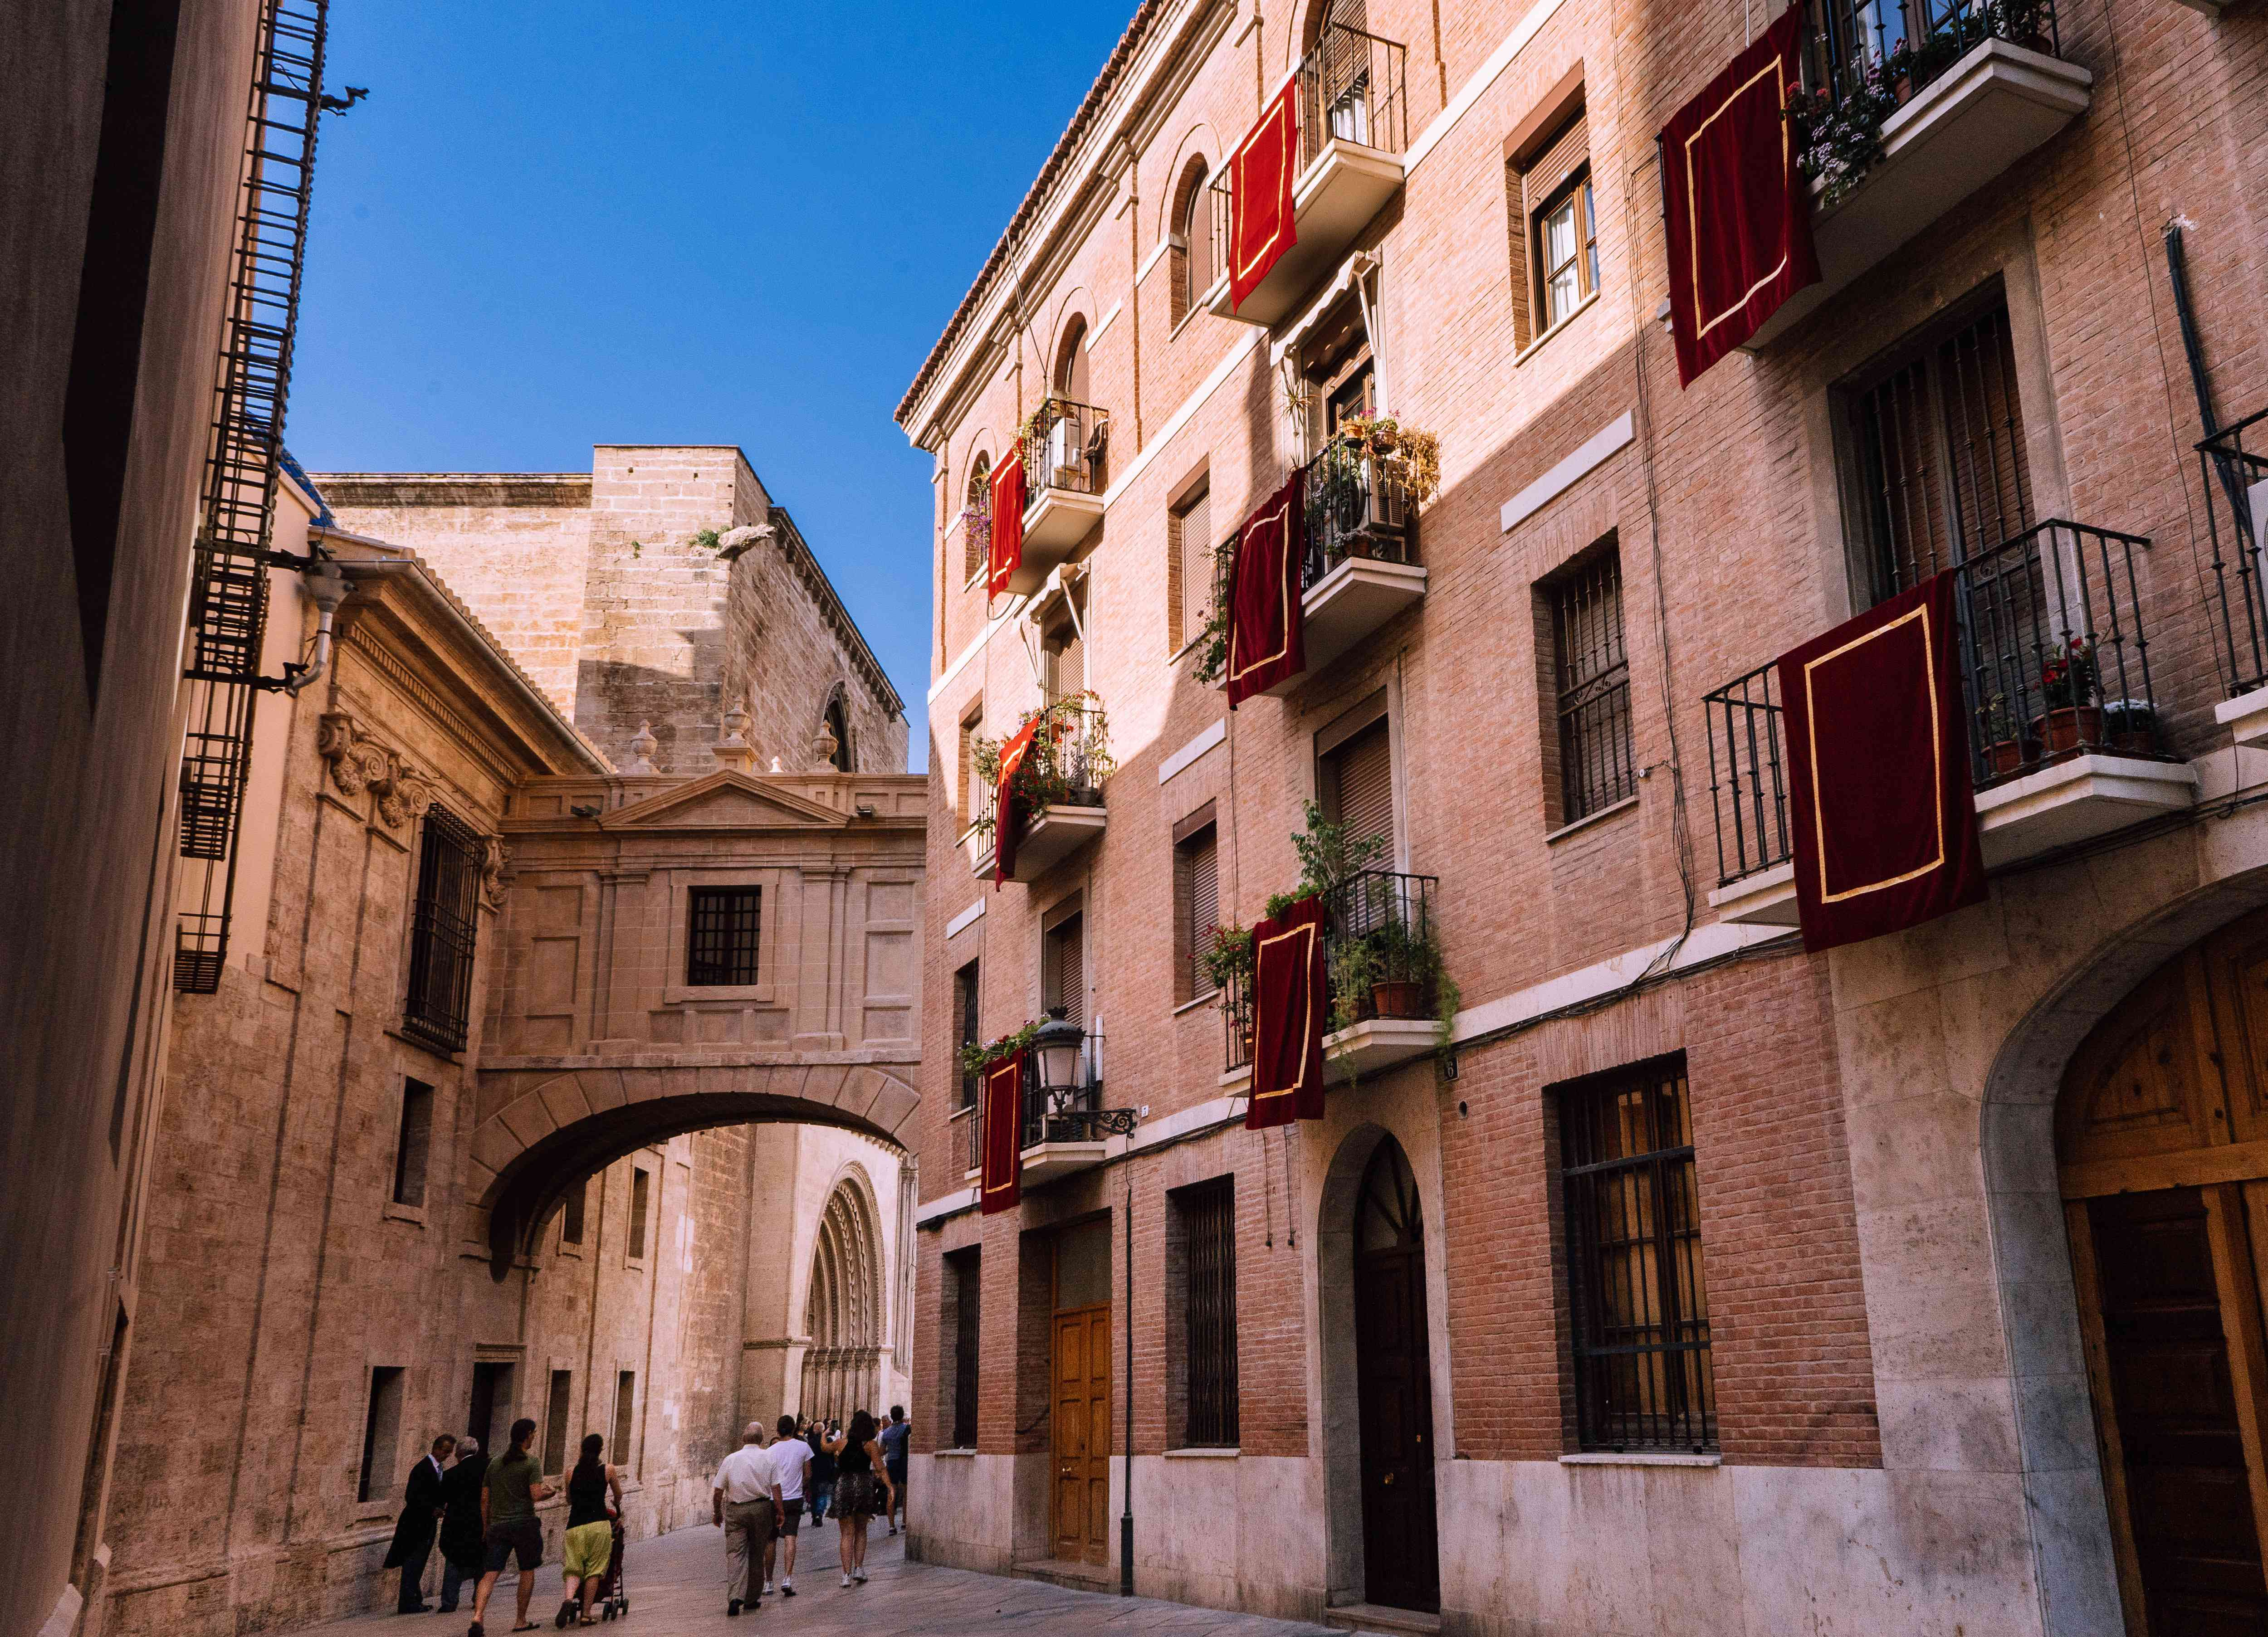 Old town of Valencia